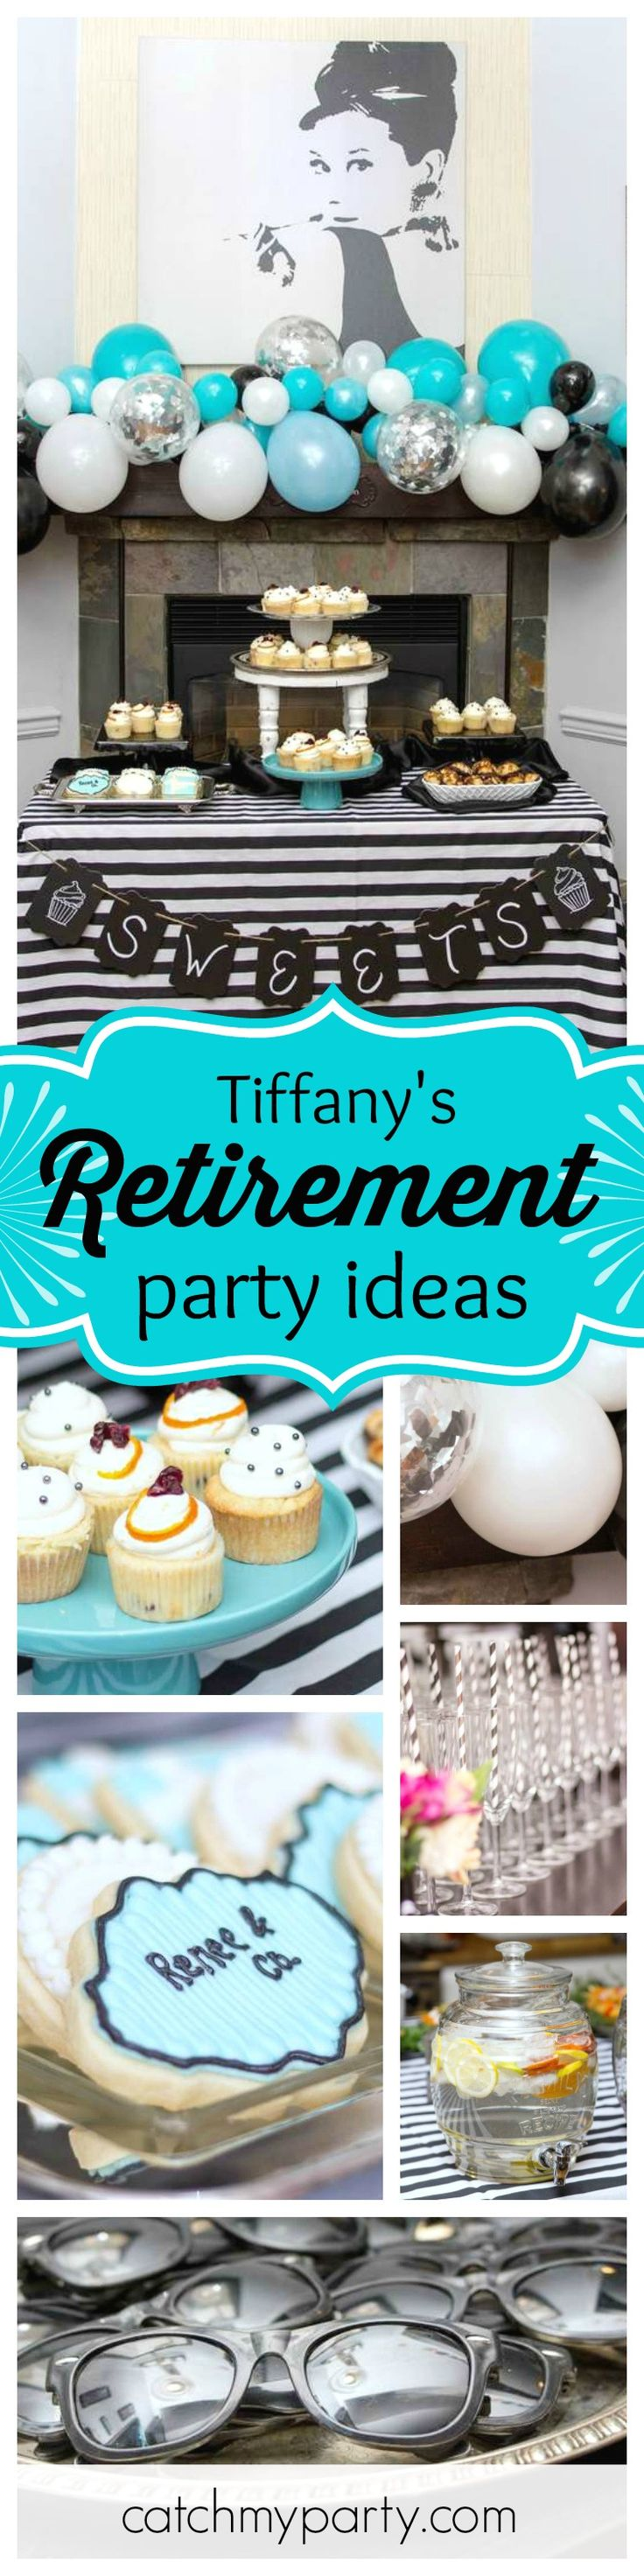 295 best Tiffany s Party Ideas images on Pinterest